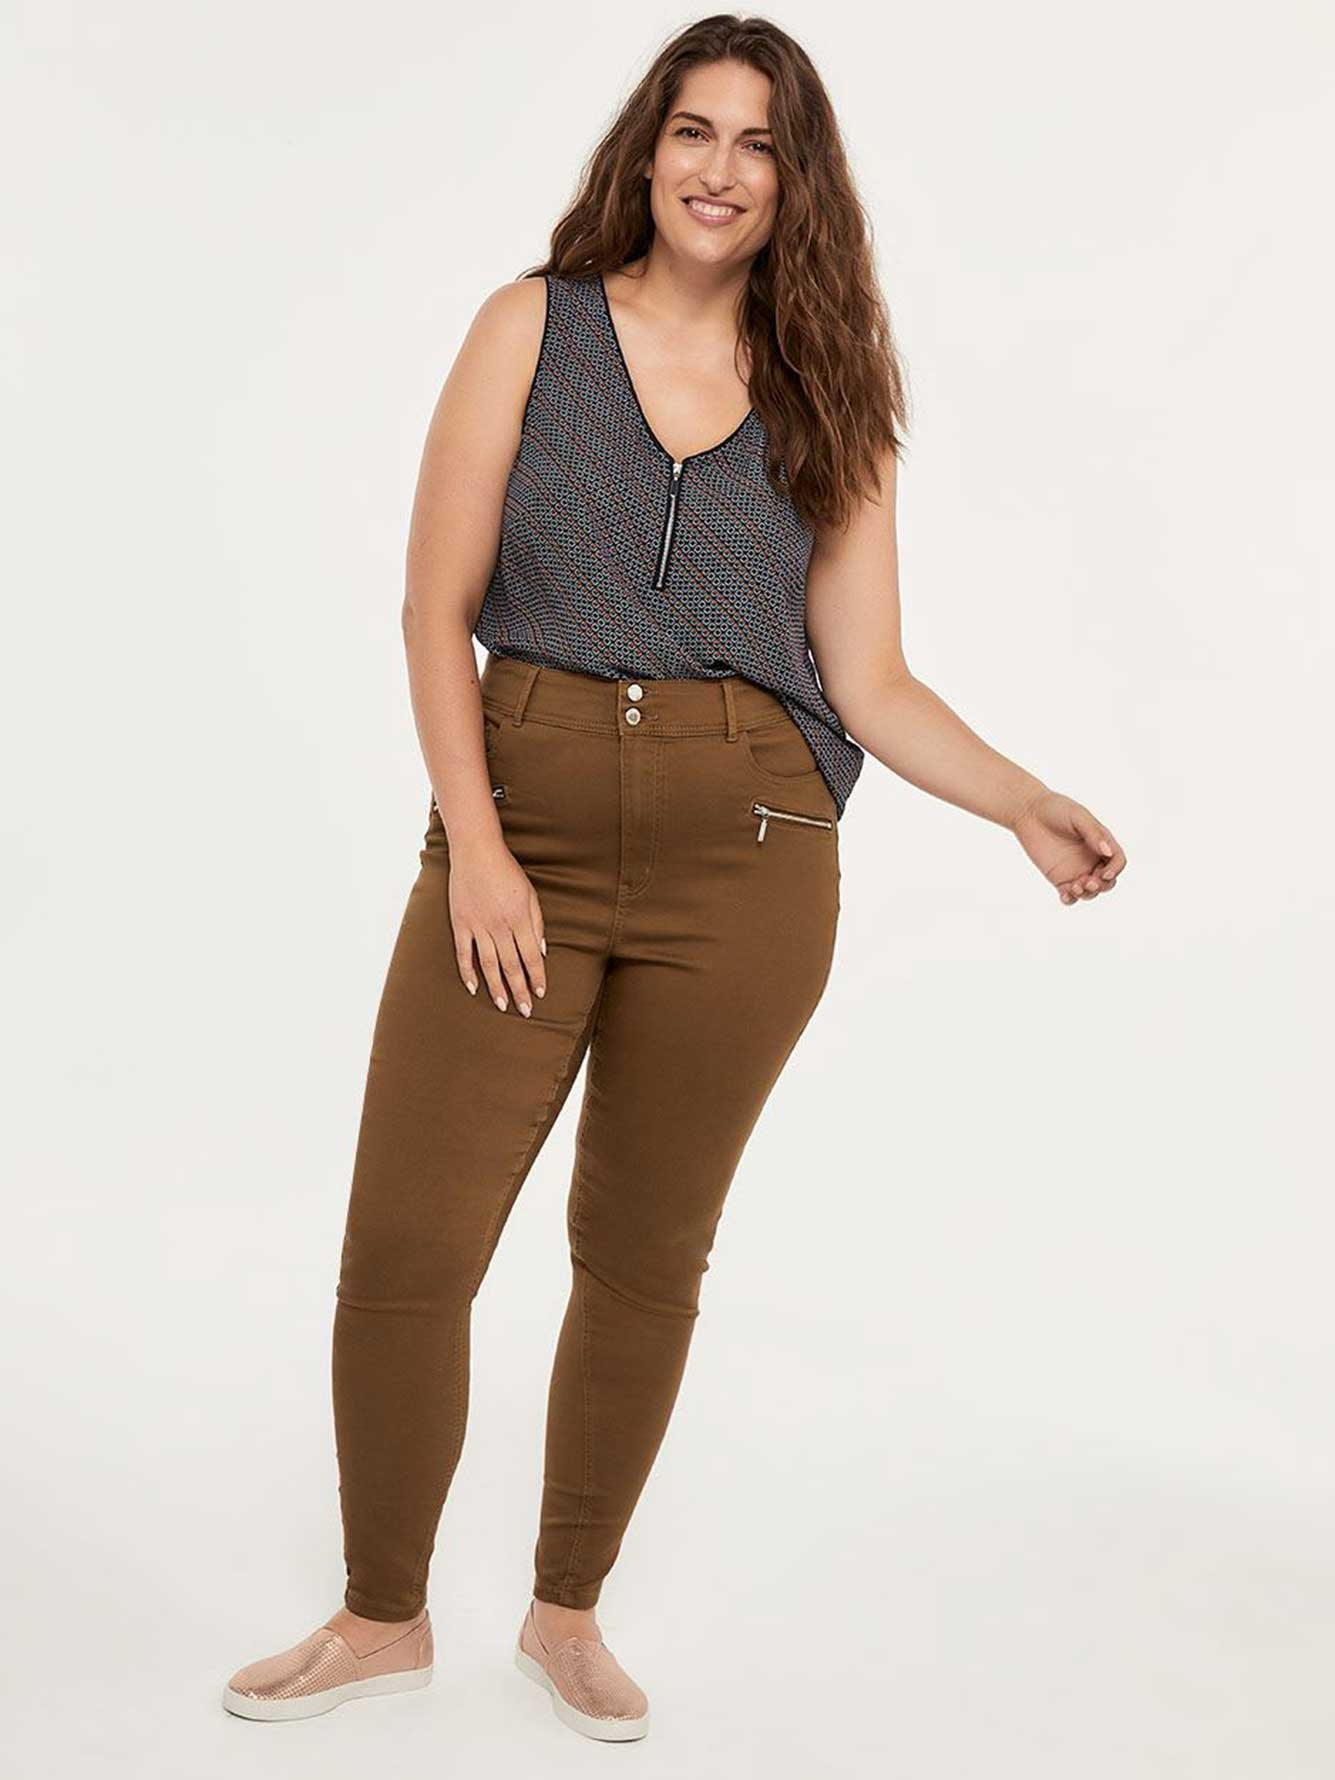 ONLINE ONLY - Tall Savvy Fit High Waisted Skinny Jean Legging - In Every Story